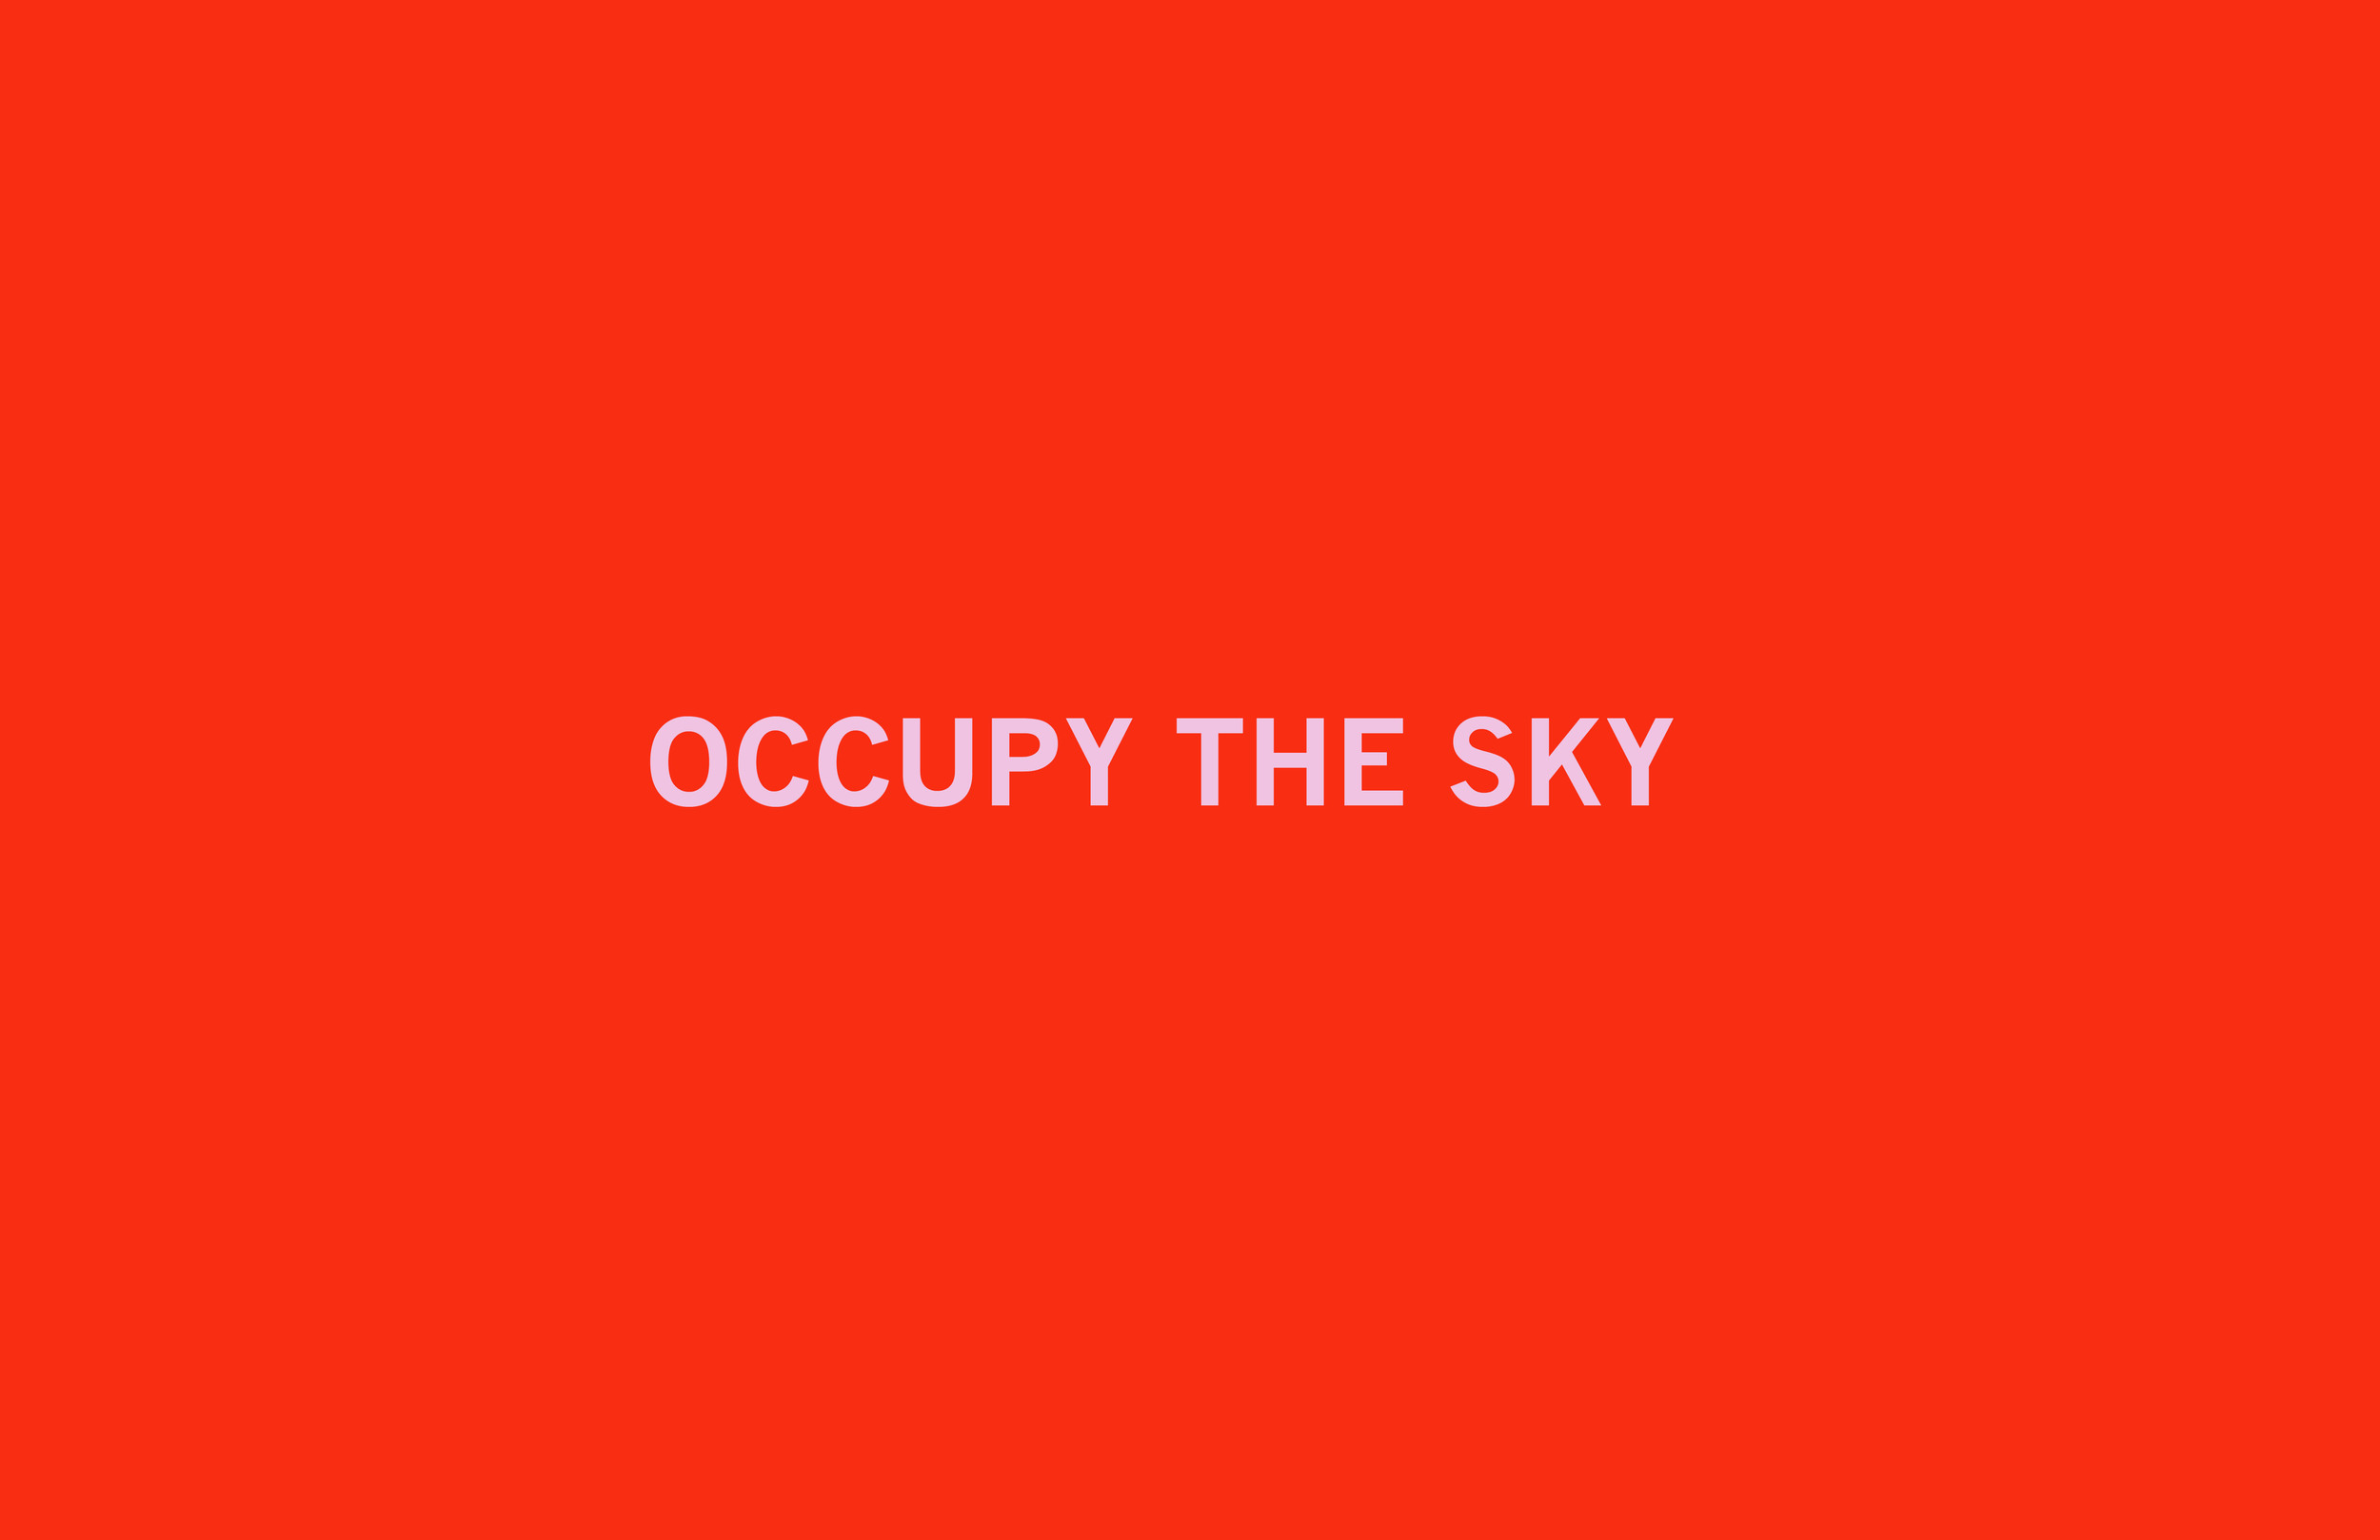 Occupy The Sky  Archival inkjet print 19 x 26 inches 2011